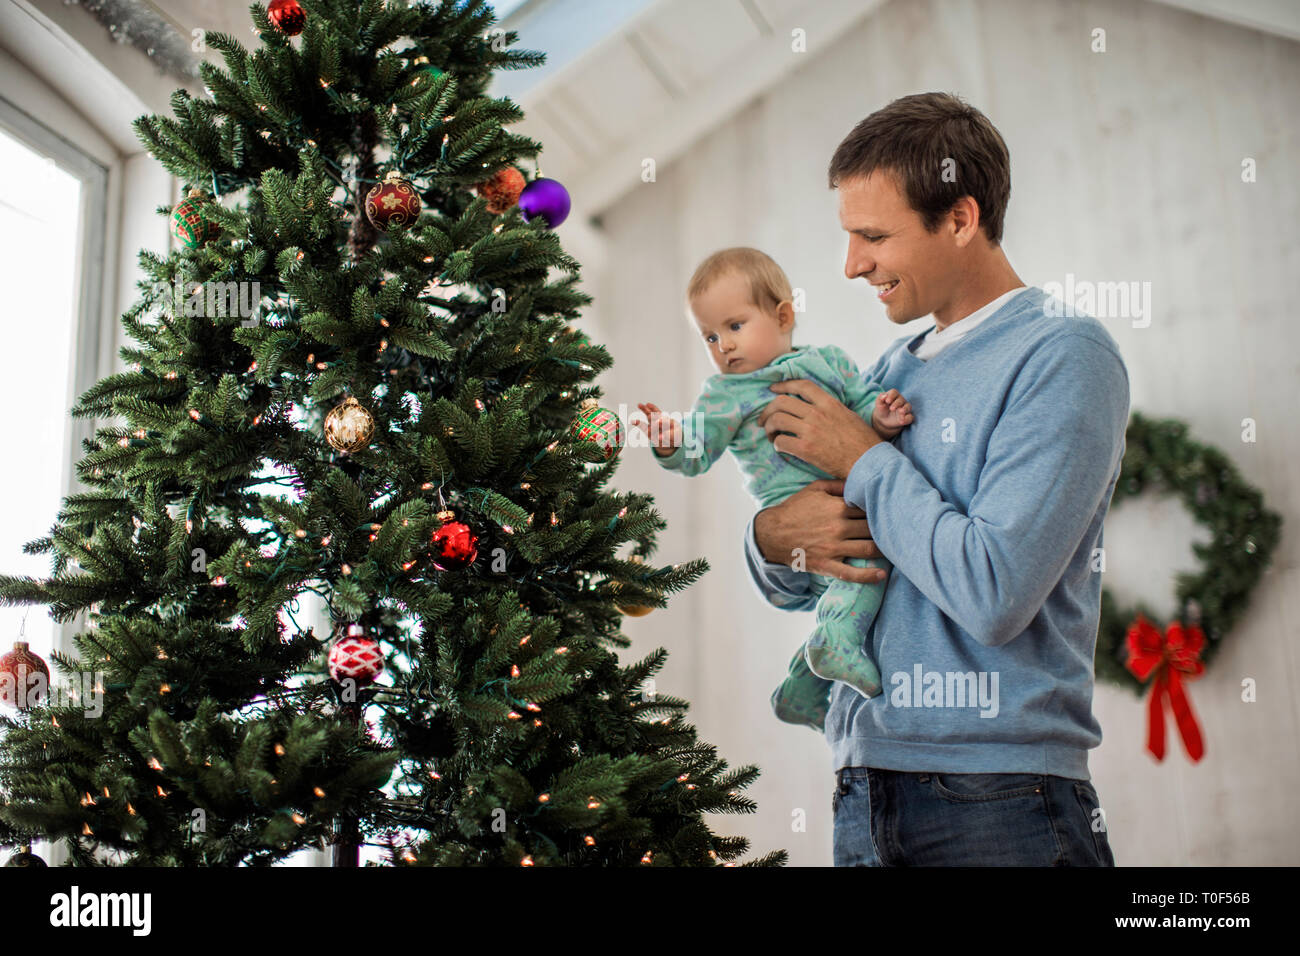 Happy father decorating a Christmas tree with his baby daughter. - Stock Image